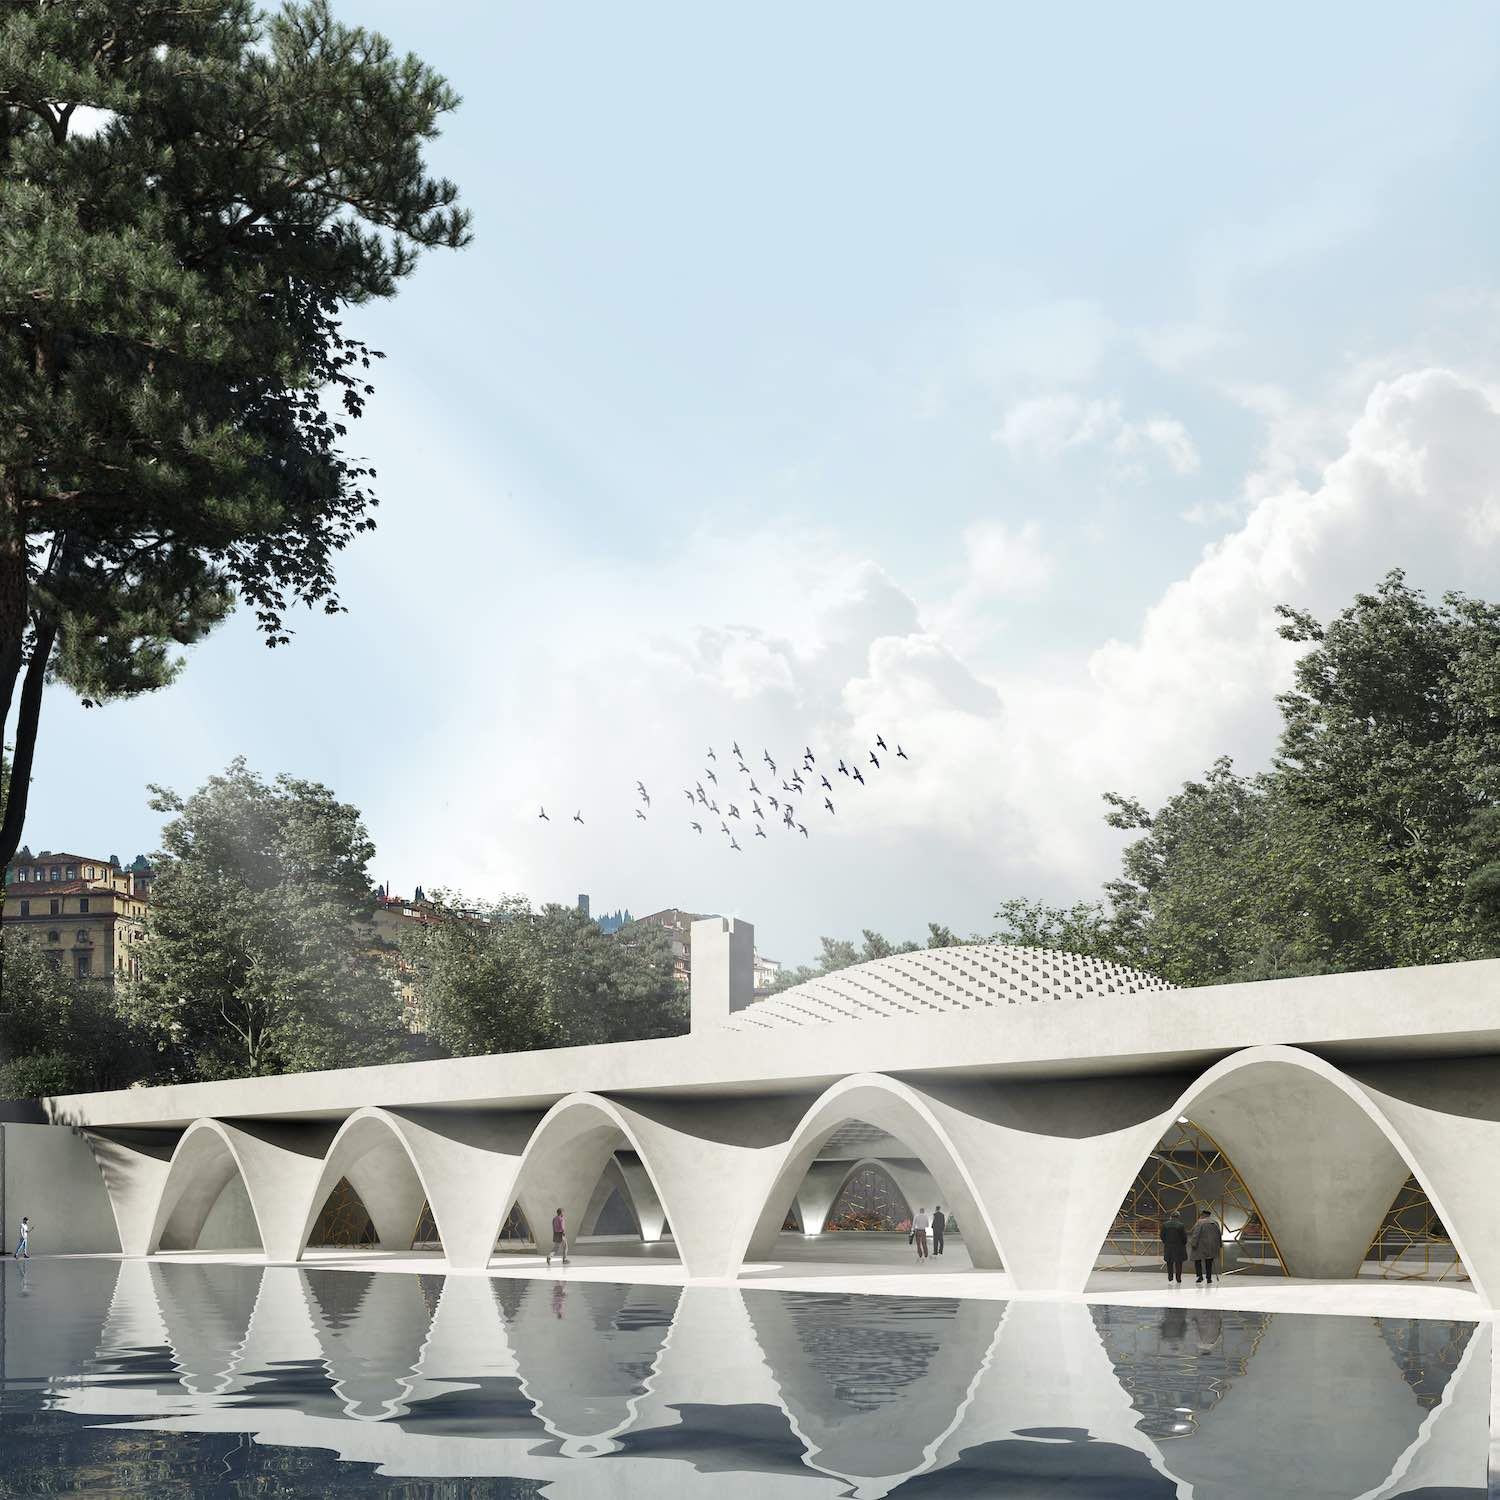 Islamic cultural center in Piedmont, Italy designed by Wafai Architecture in collaboration with Fragomeli and Partners